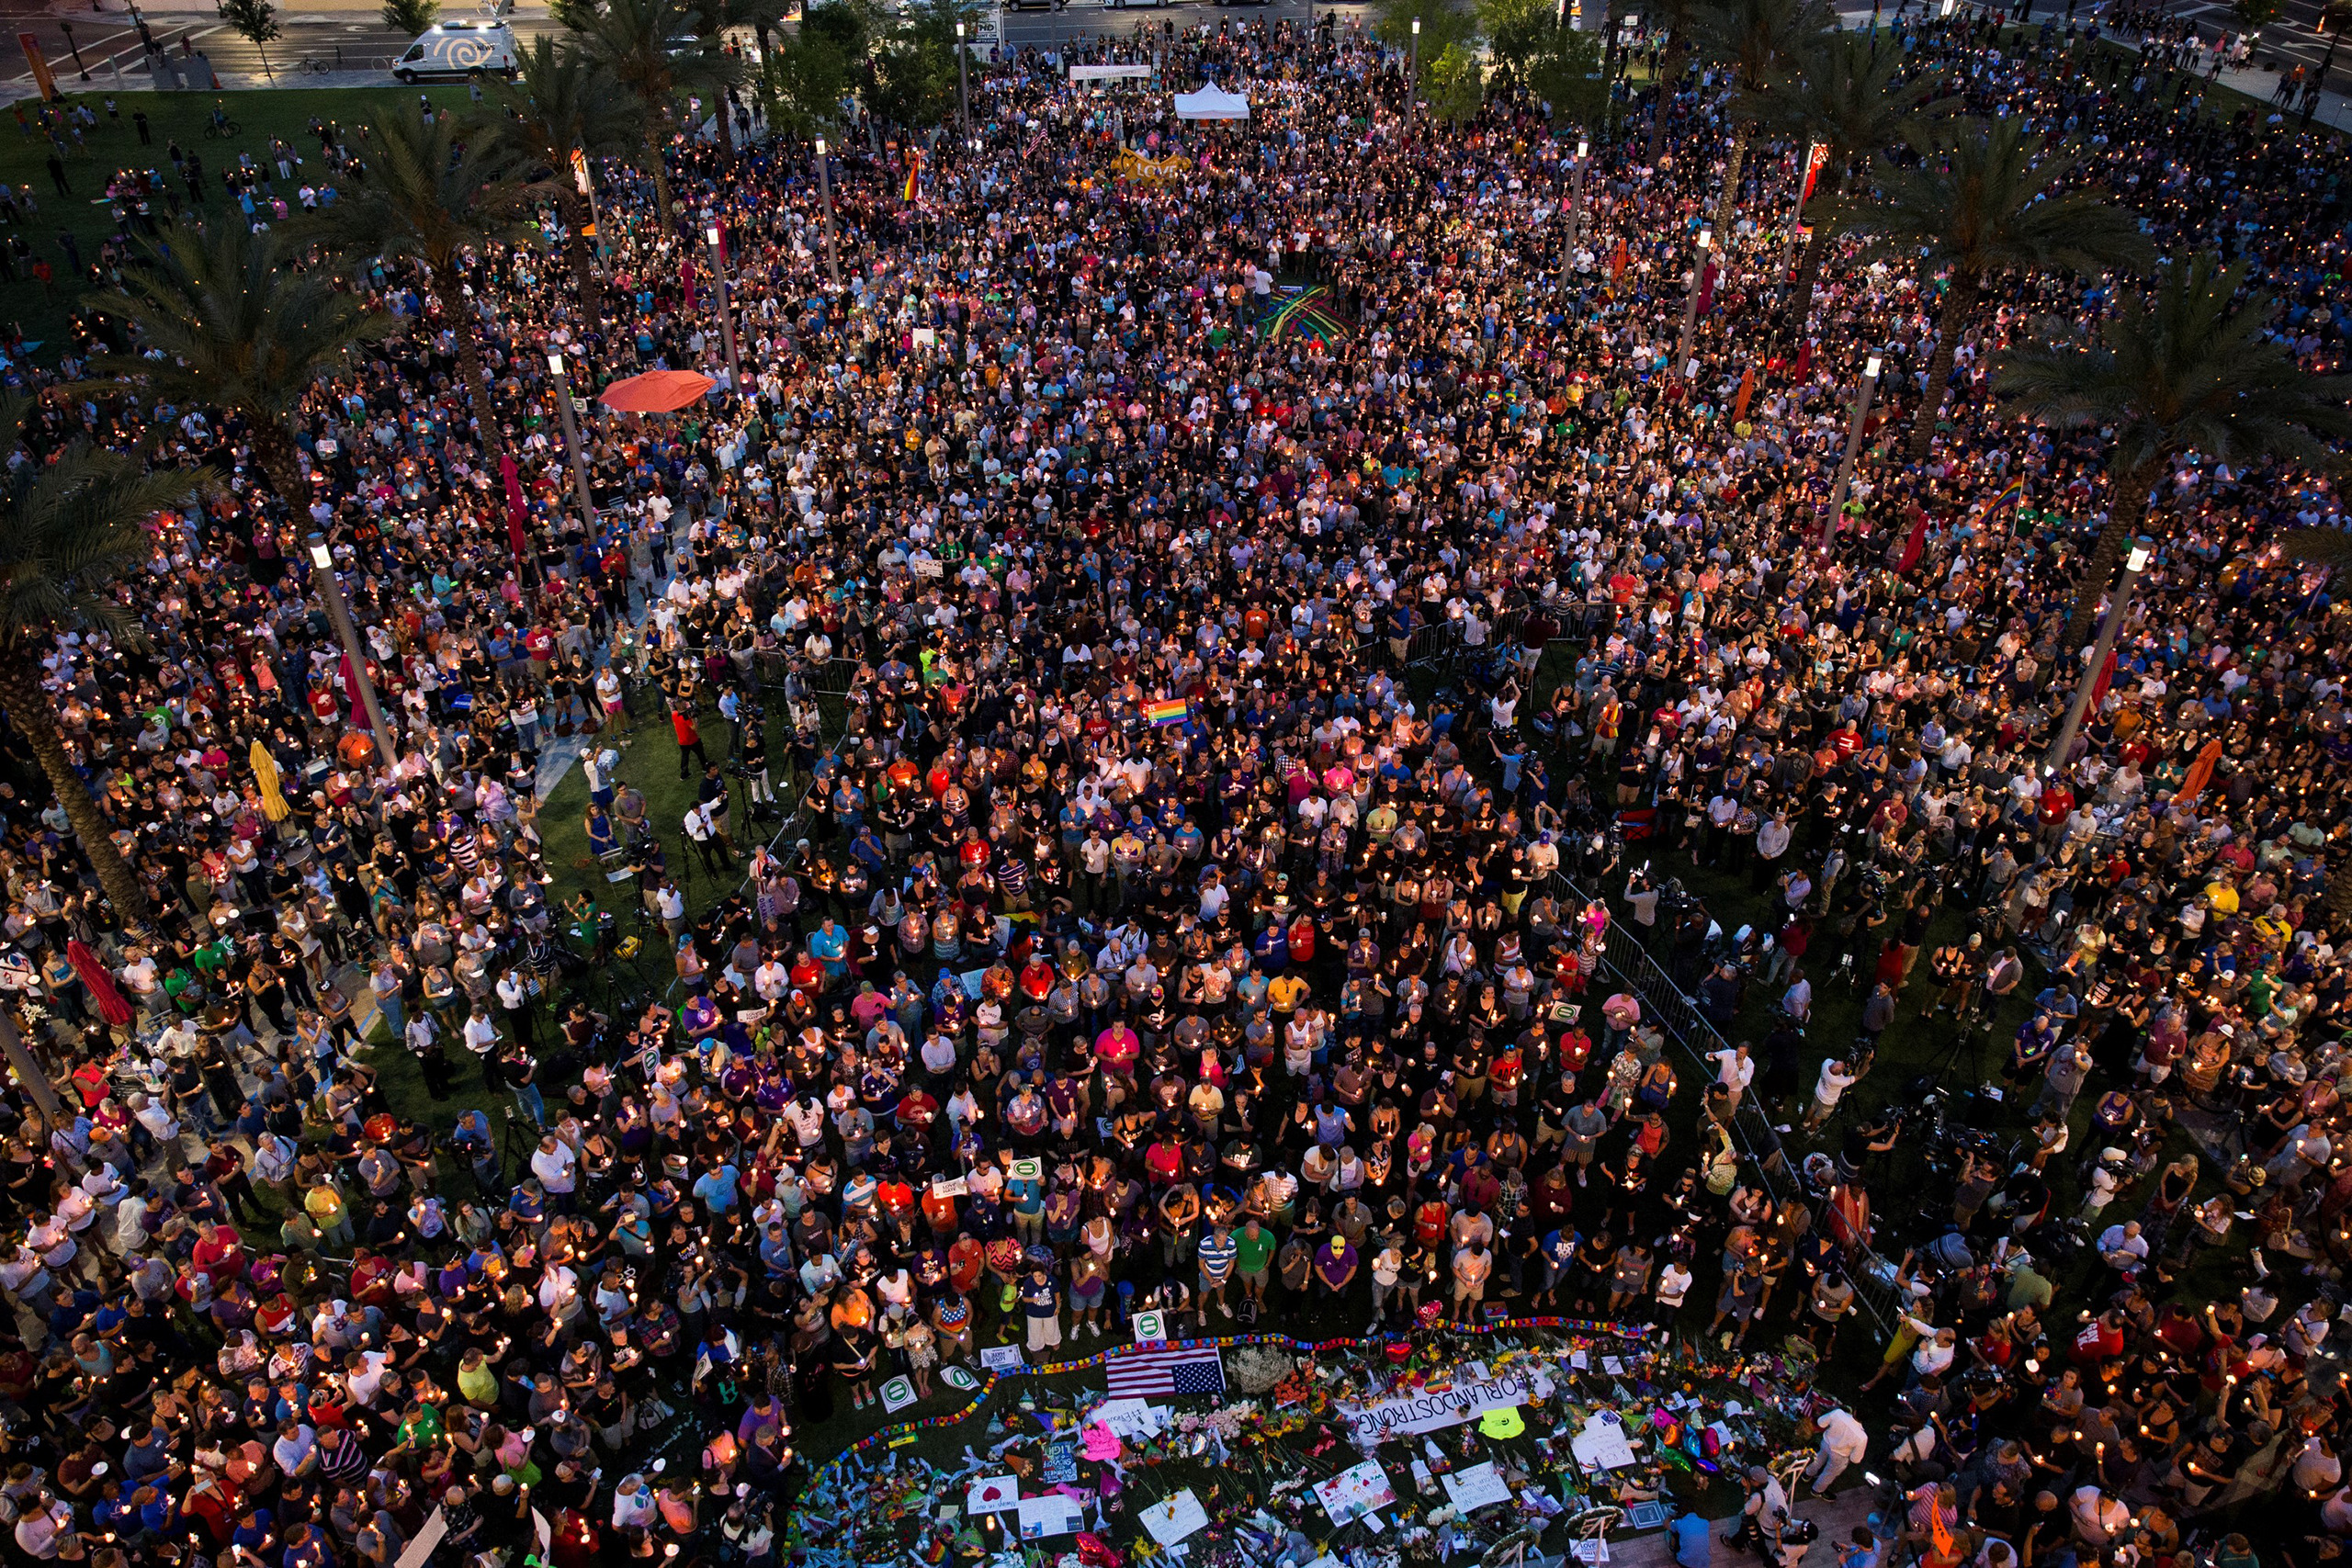 Thousands gather at the Dr. Phillips Center for the Performing Arts to pay their respects for those lost in the Pulse nightclub shooting in Orlando on June 13, 2016.                                                                Candlelight vigils and remembrances for the victims of the shooting at Pulse, a gay nightclub in Orlando, Florida. Early Sunday, an American-born man who had recently pledged allegiance to ISIS opened fire in the nightclub killing at least 49 people, in the worst mass shooting in U.S. history.